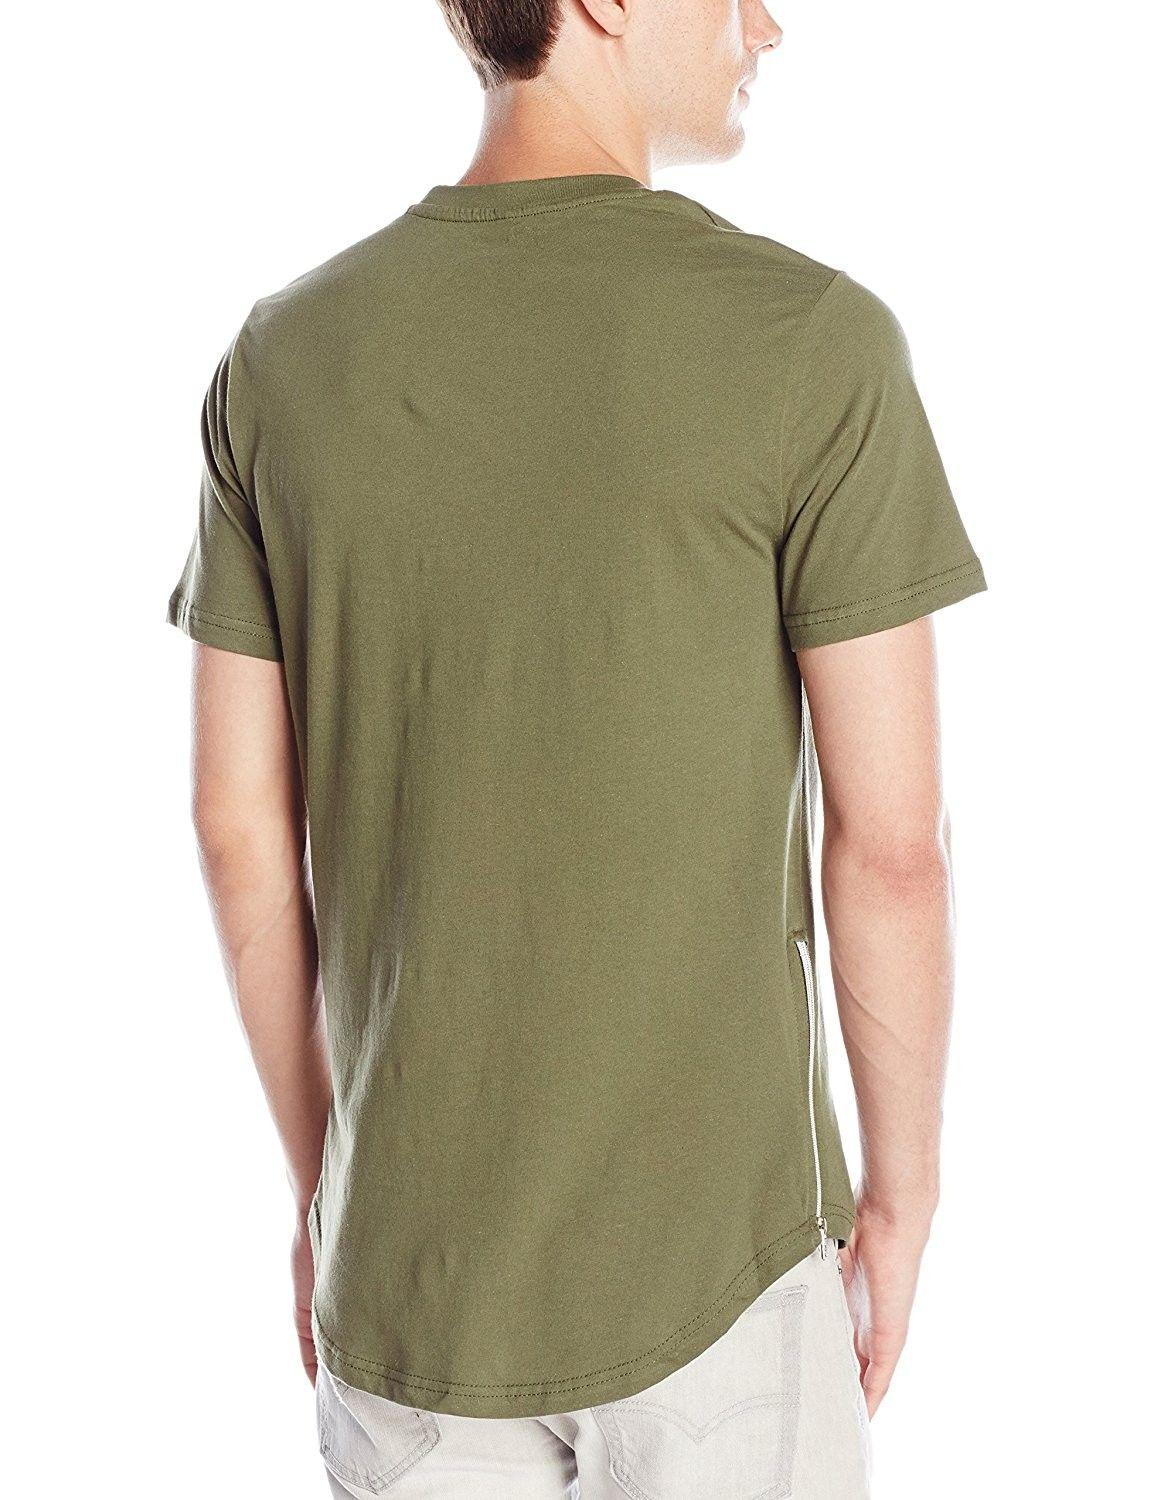 beb9e6a4a24b Men's Clothing, Shirts, T-Shirts, Men's Basic Short Sleeve Scallop Long  Length Tee With Side Zippers - Light Olive - C512G9R38UD #men #fashion  #clothing ...